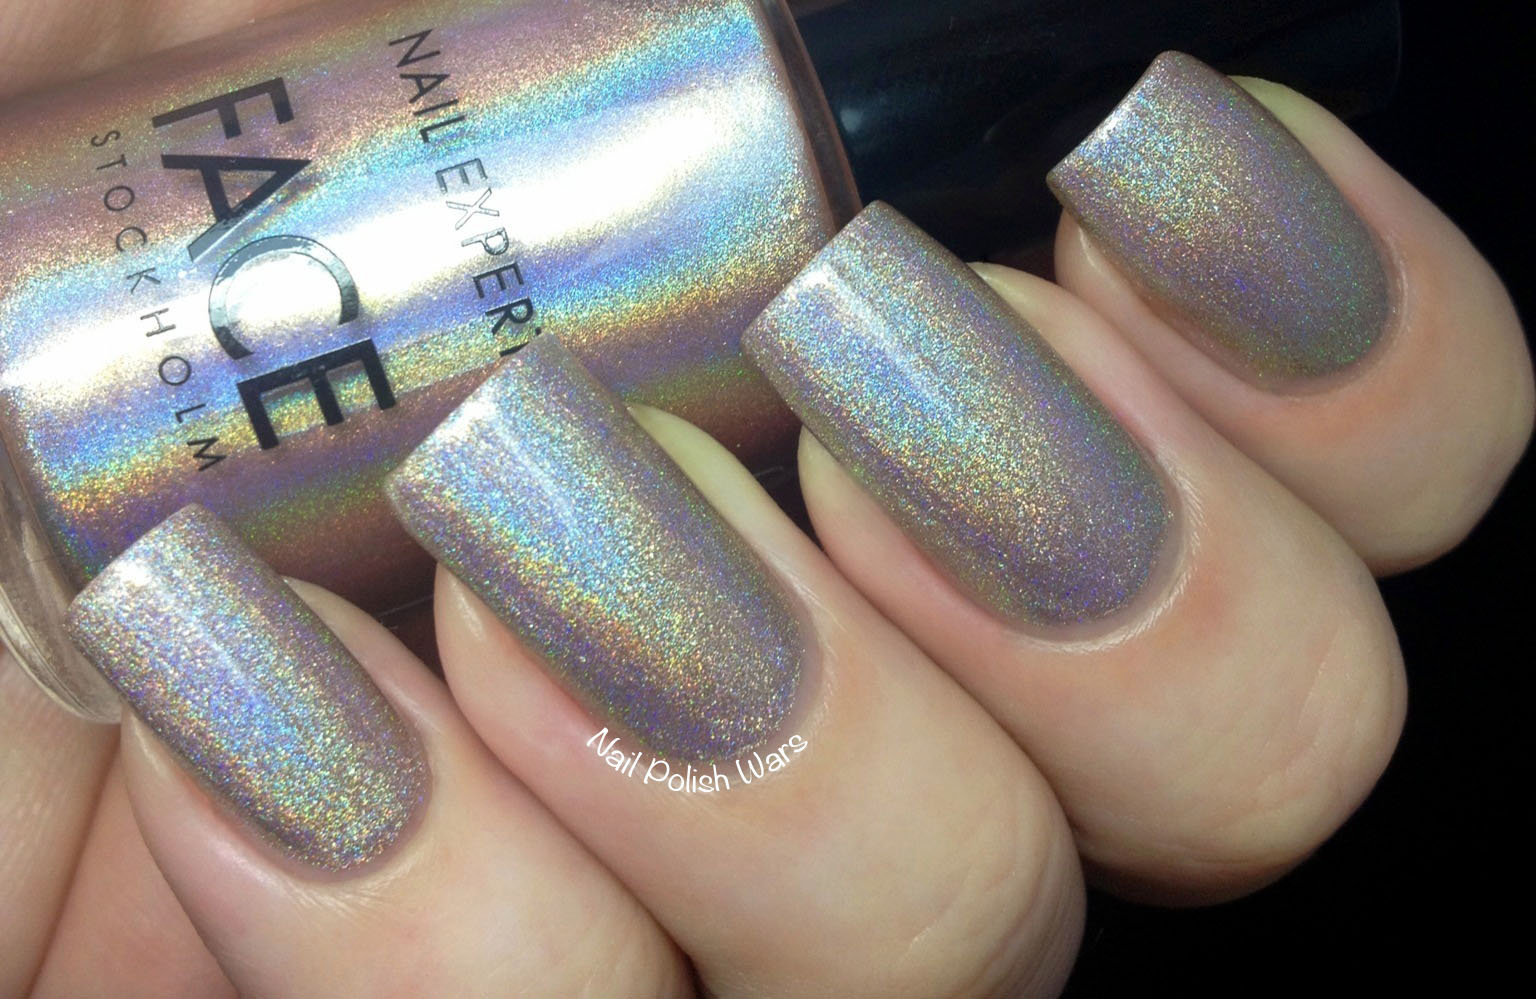 Nail Polish Wars: Face Stockholm Leto Swatch & Review